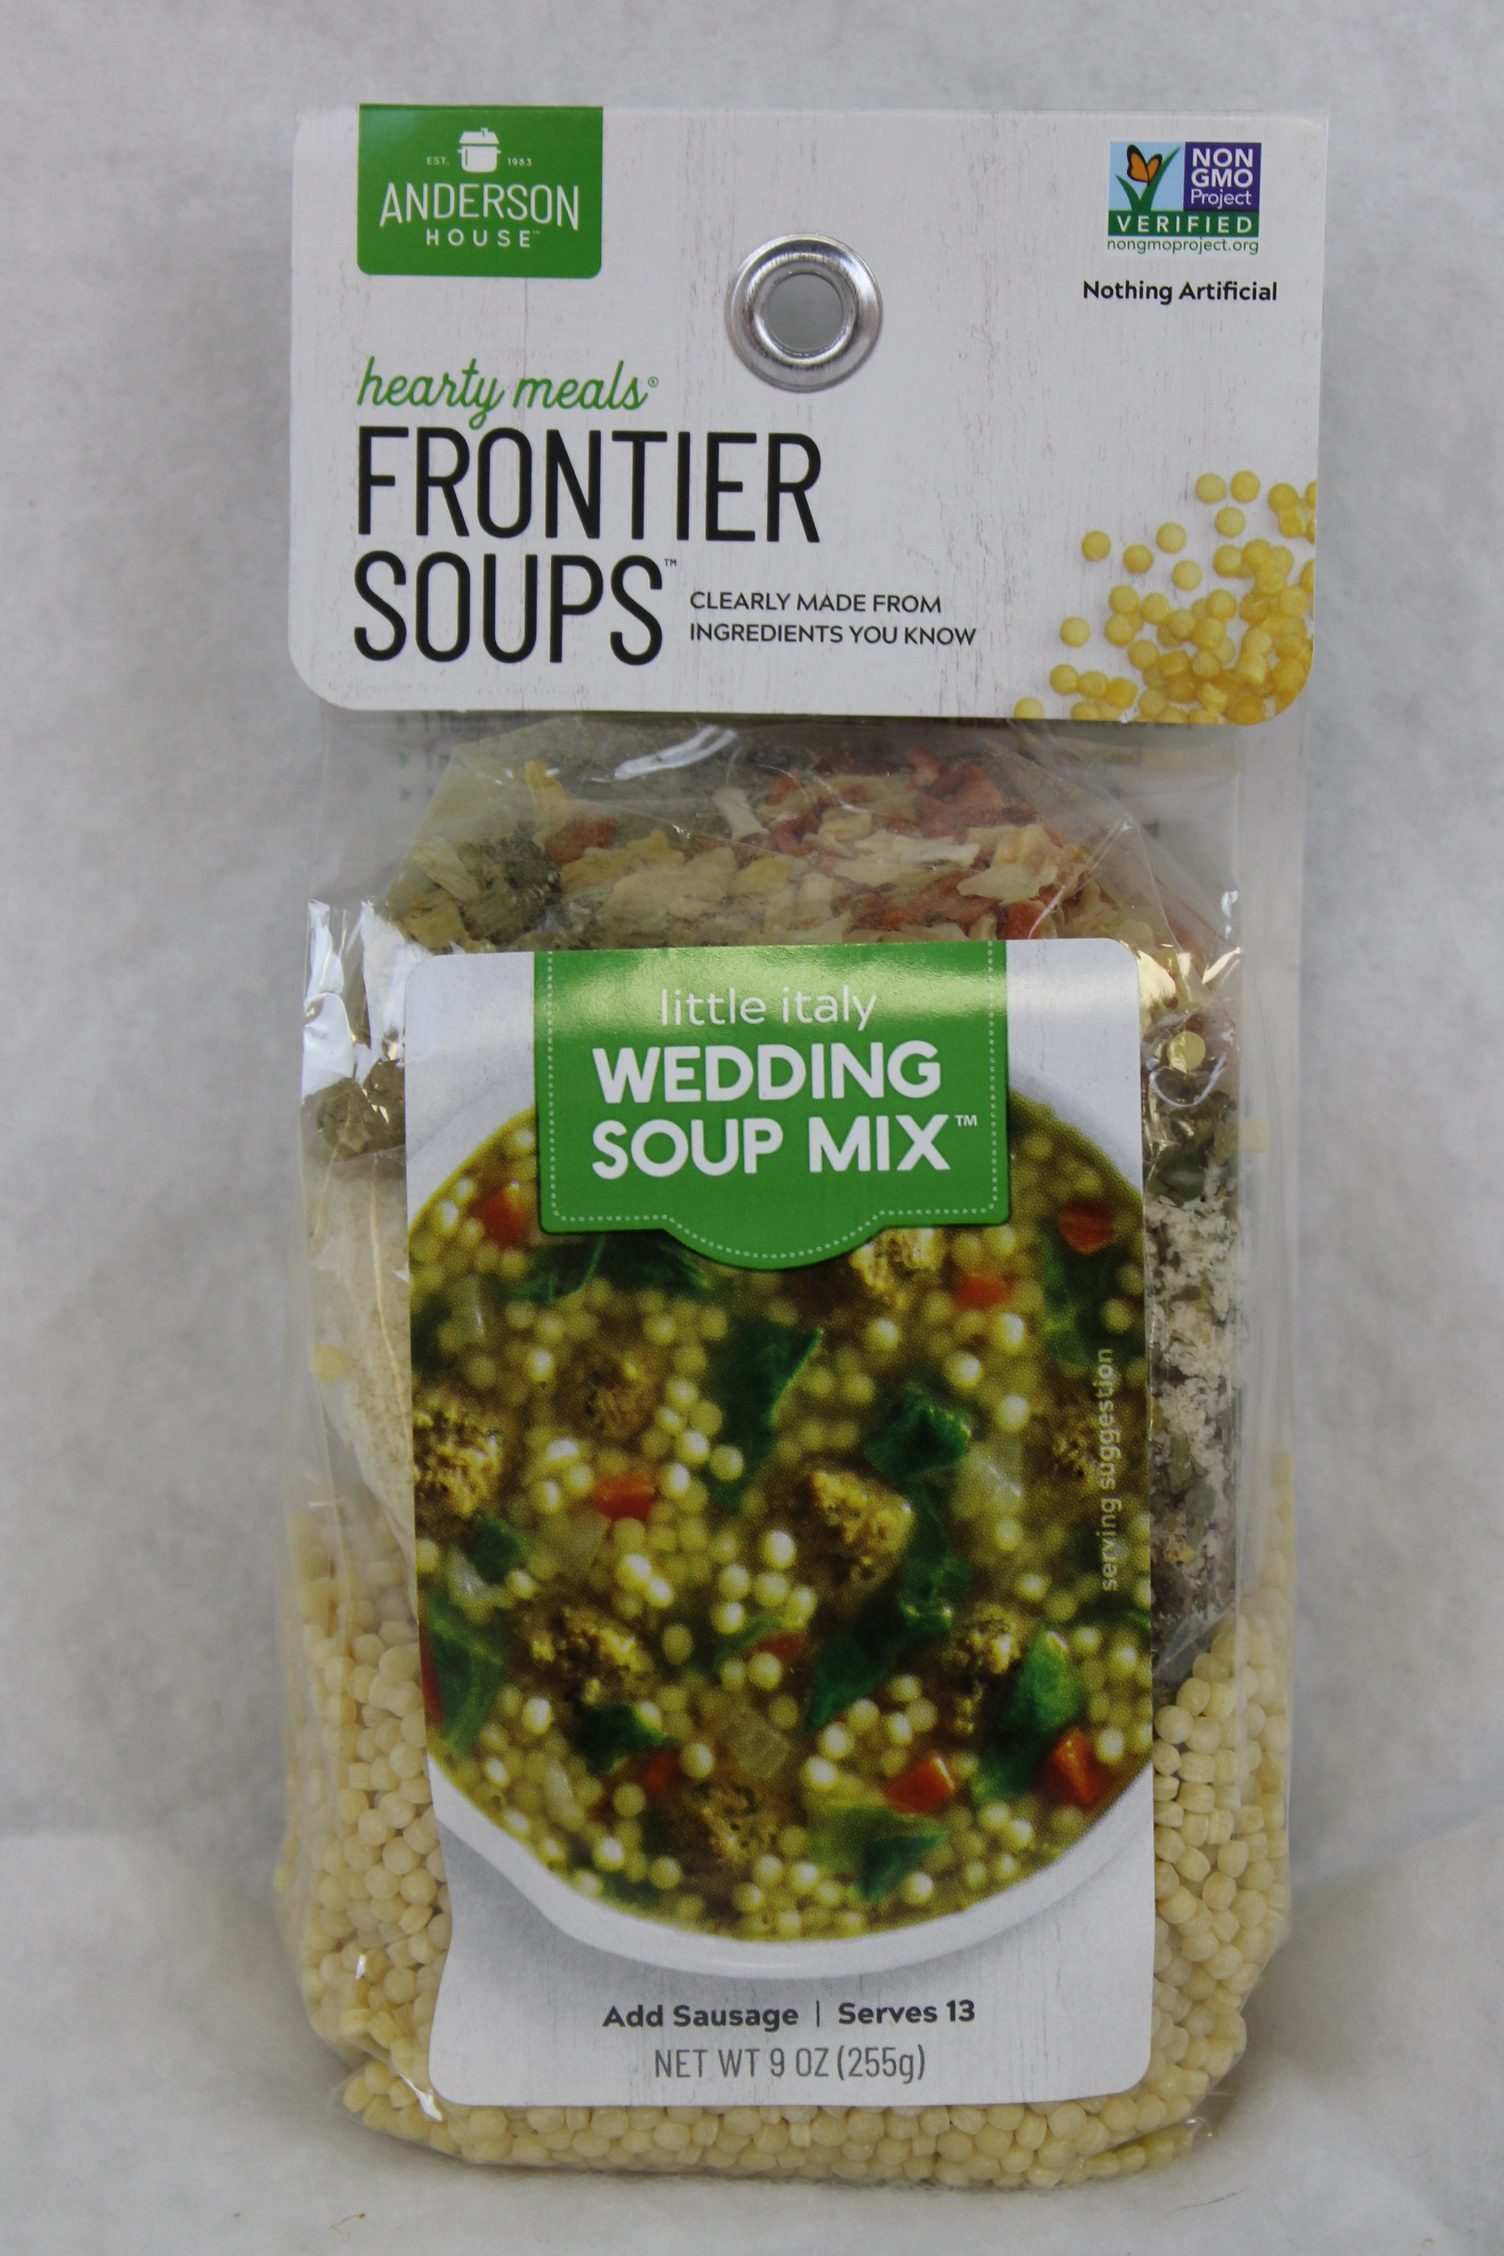 Italian wedding soup product image